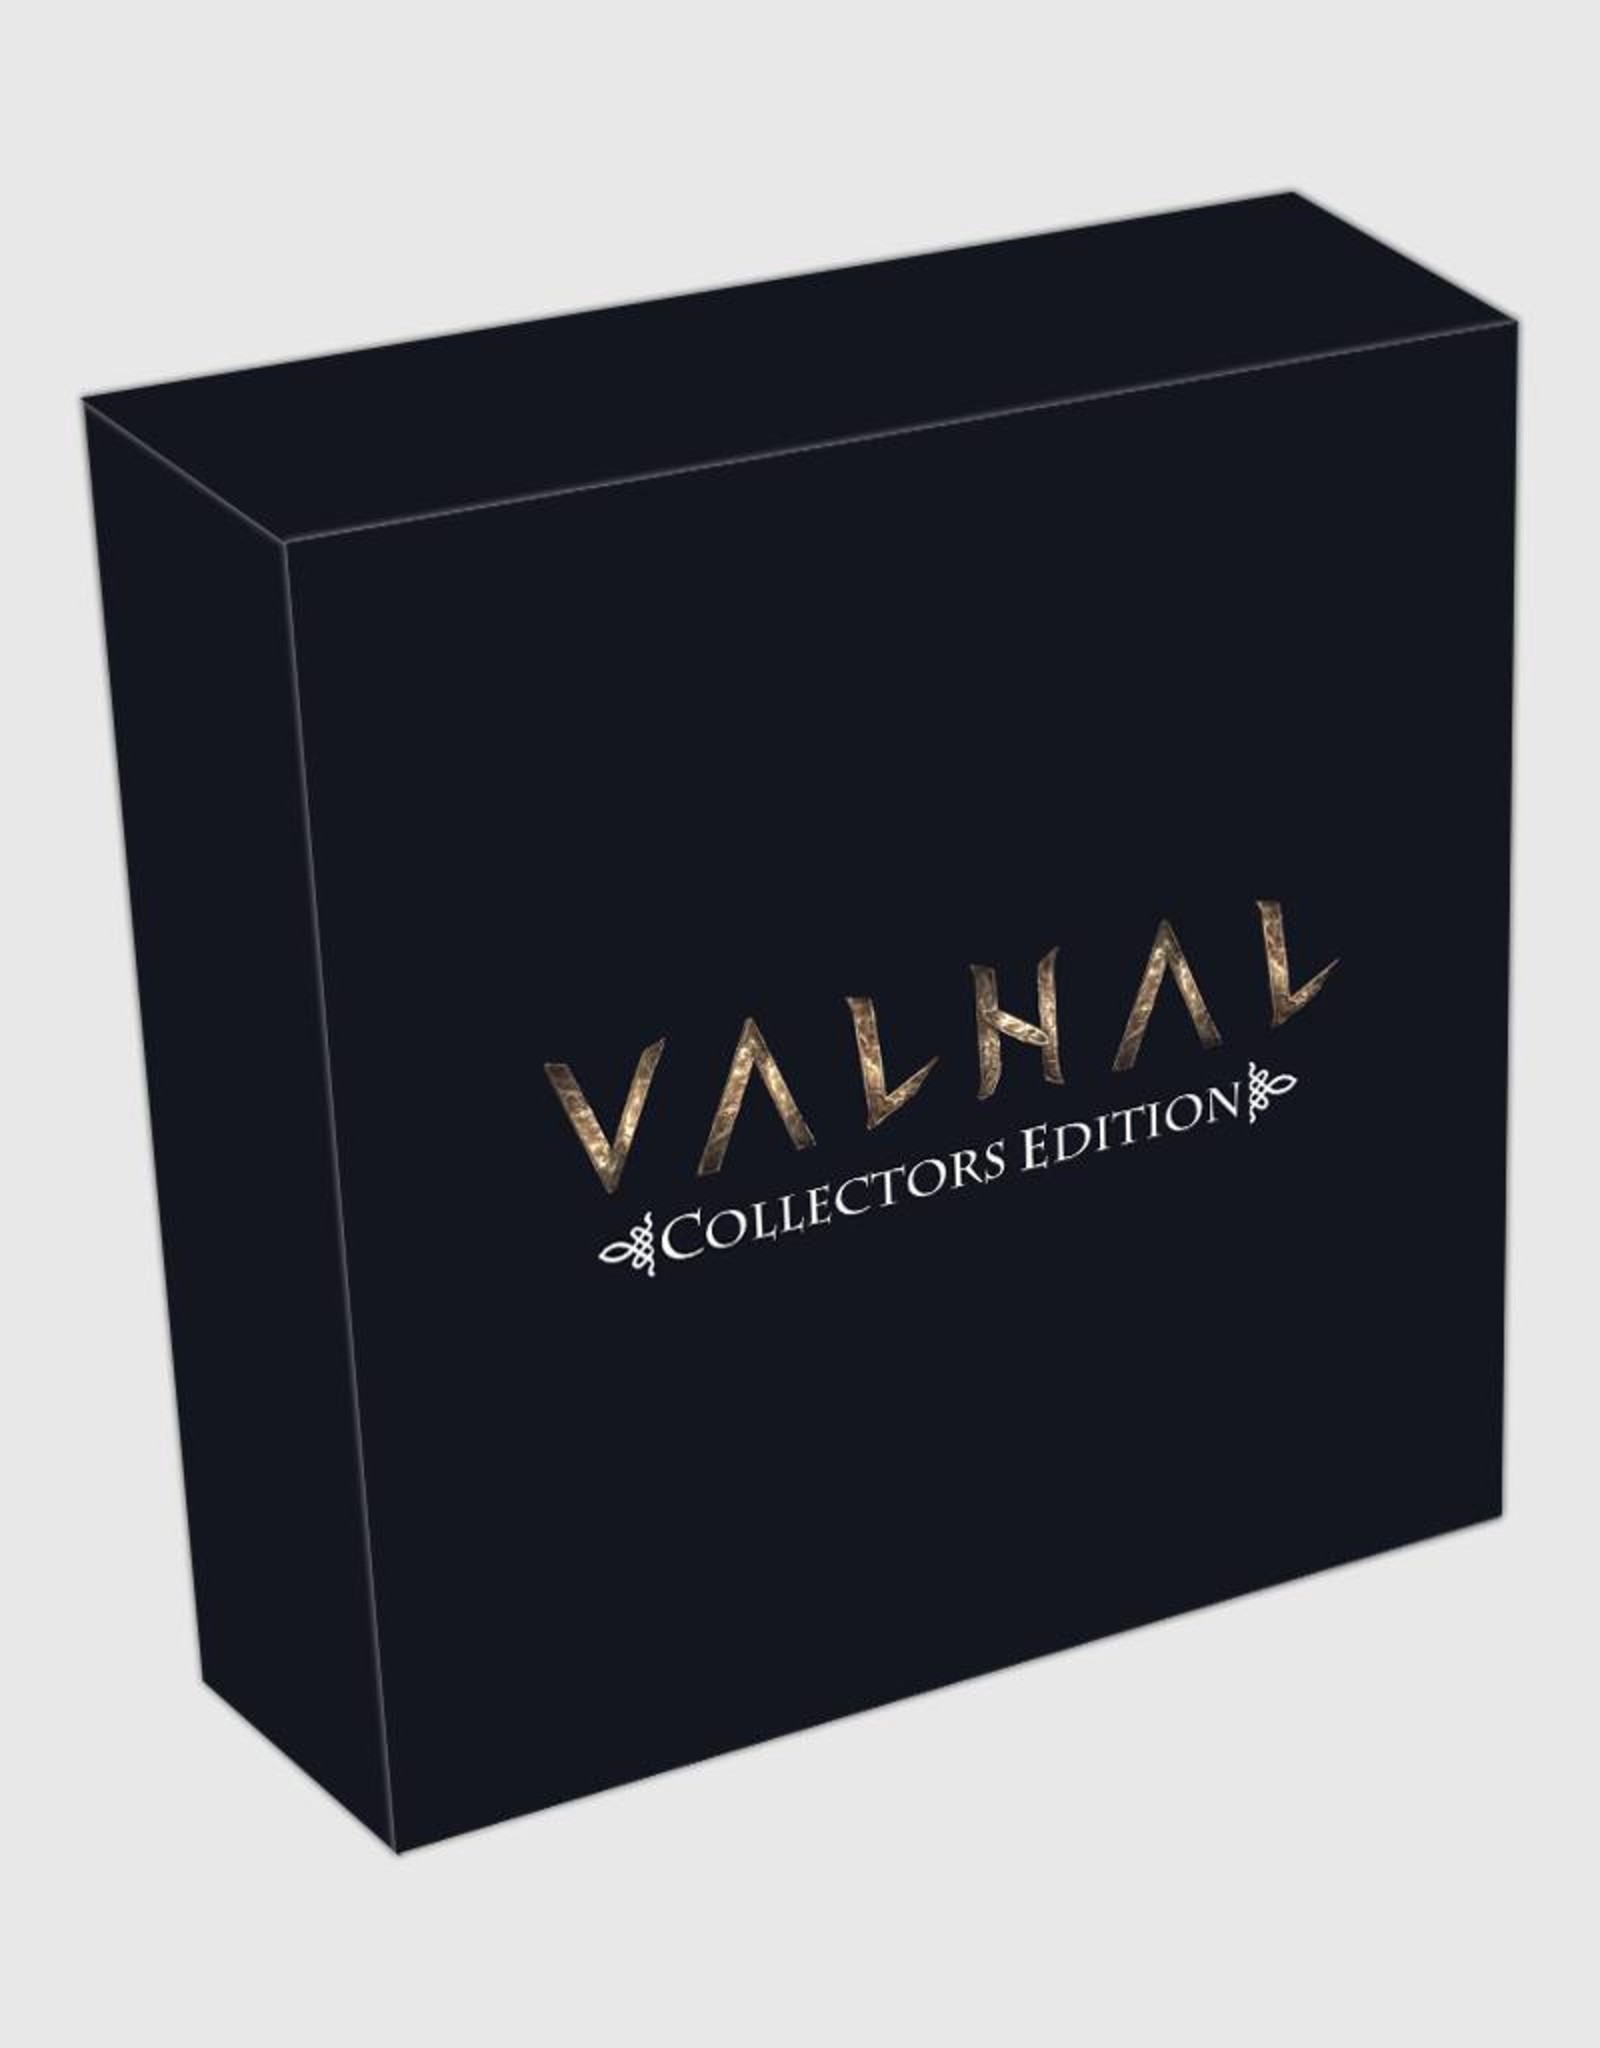 Valhal - Collectors Edition